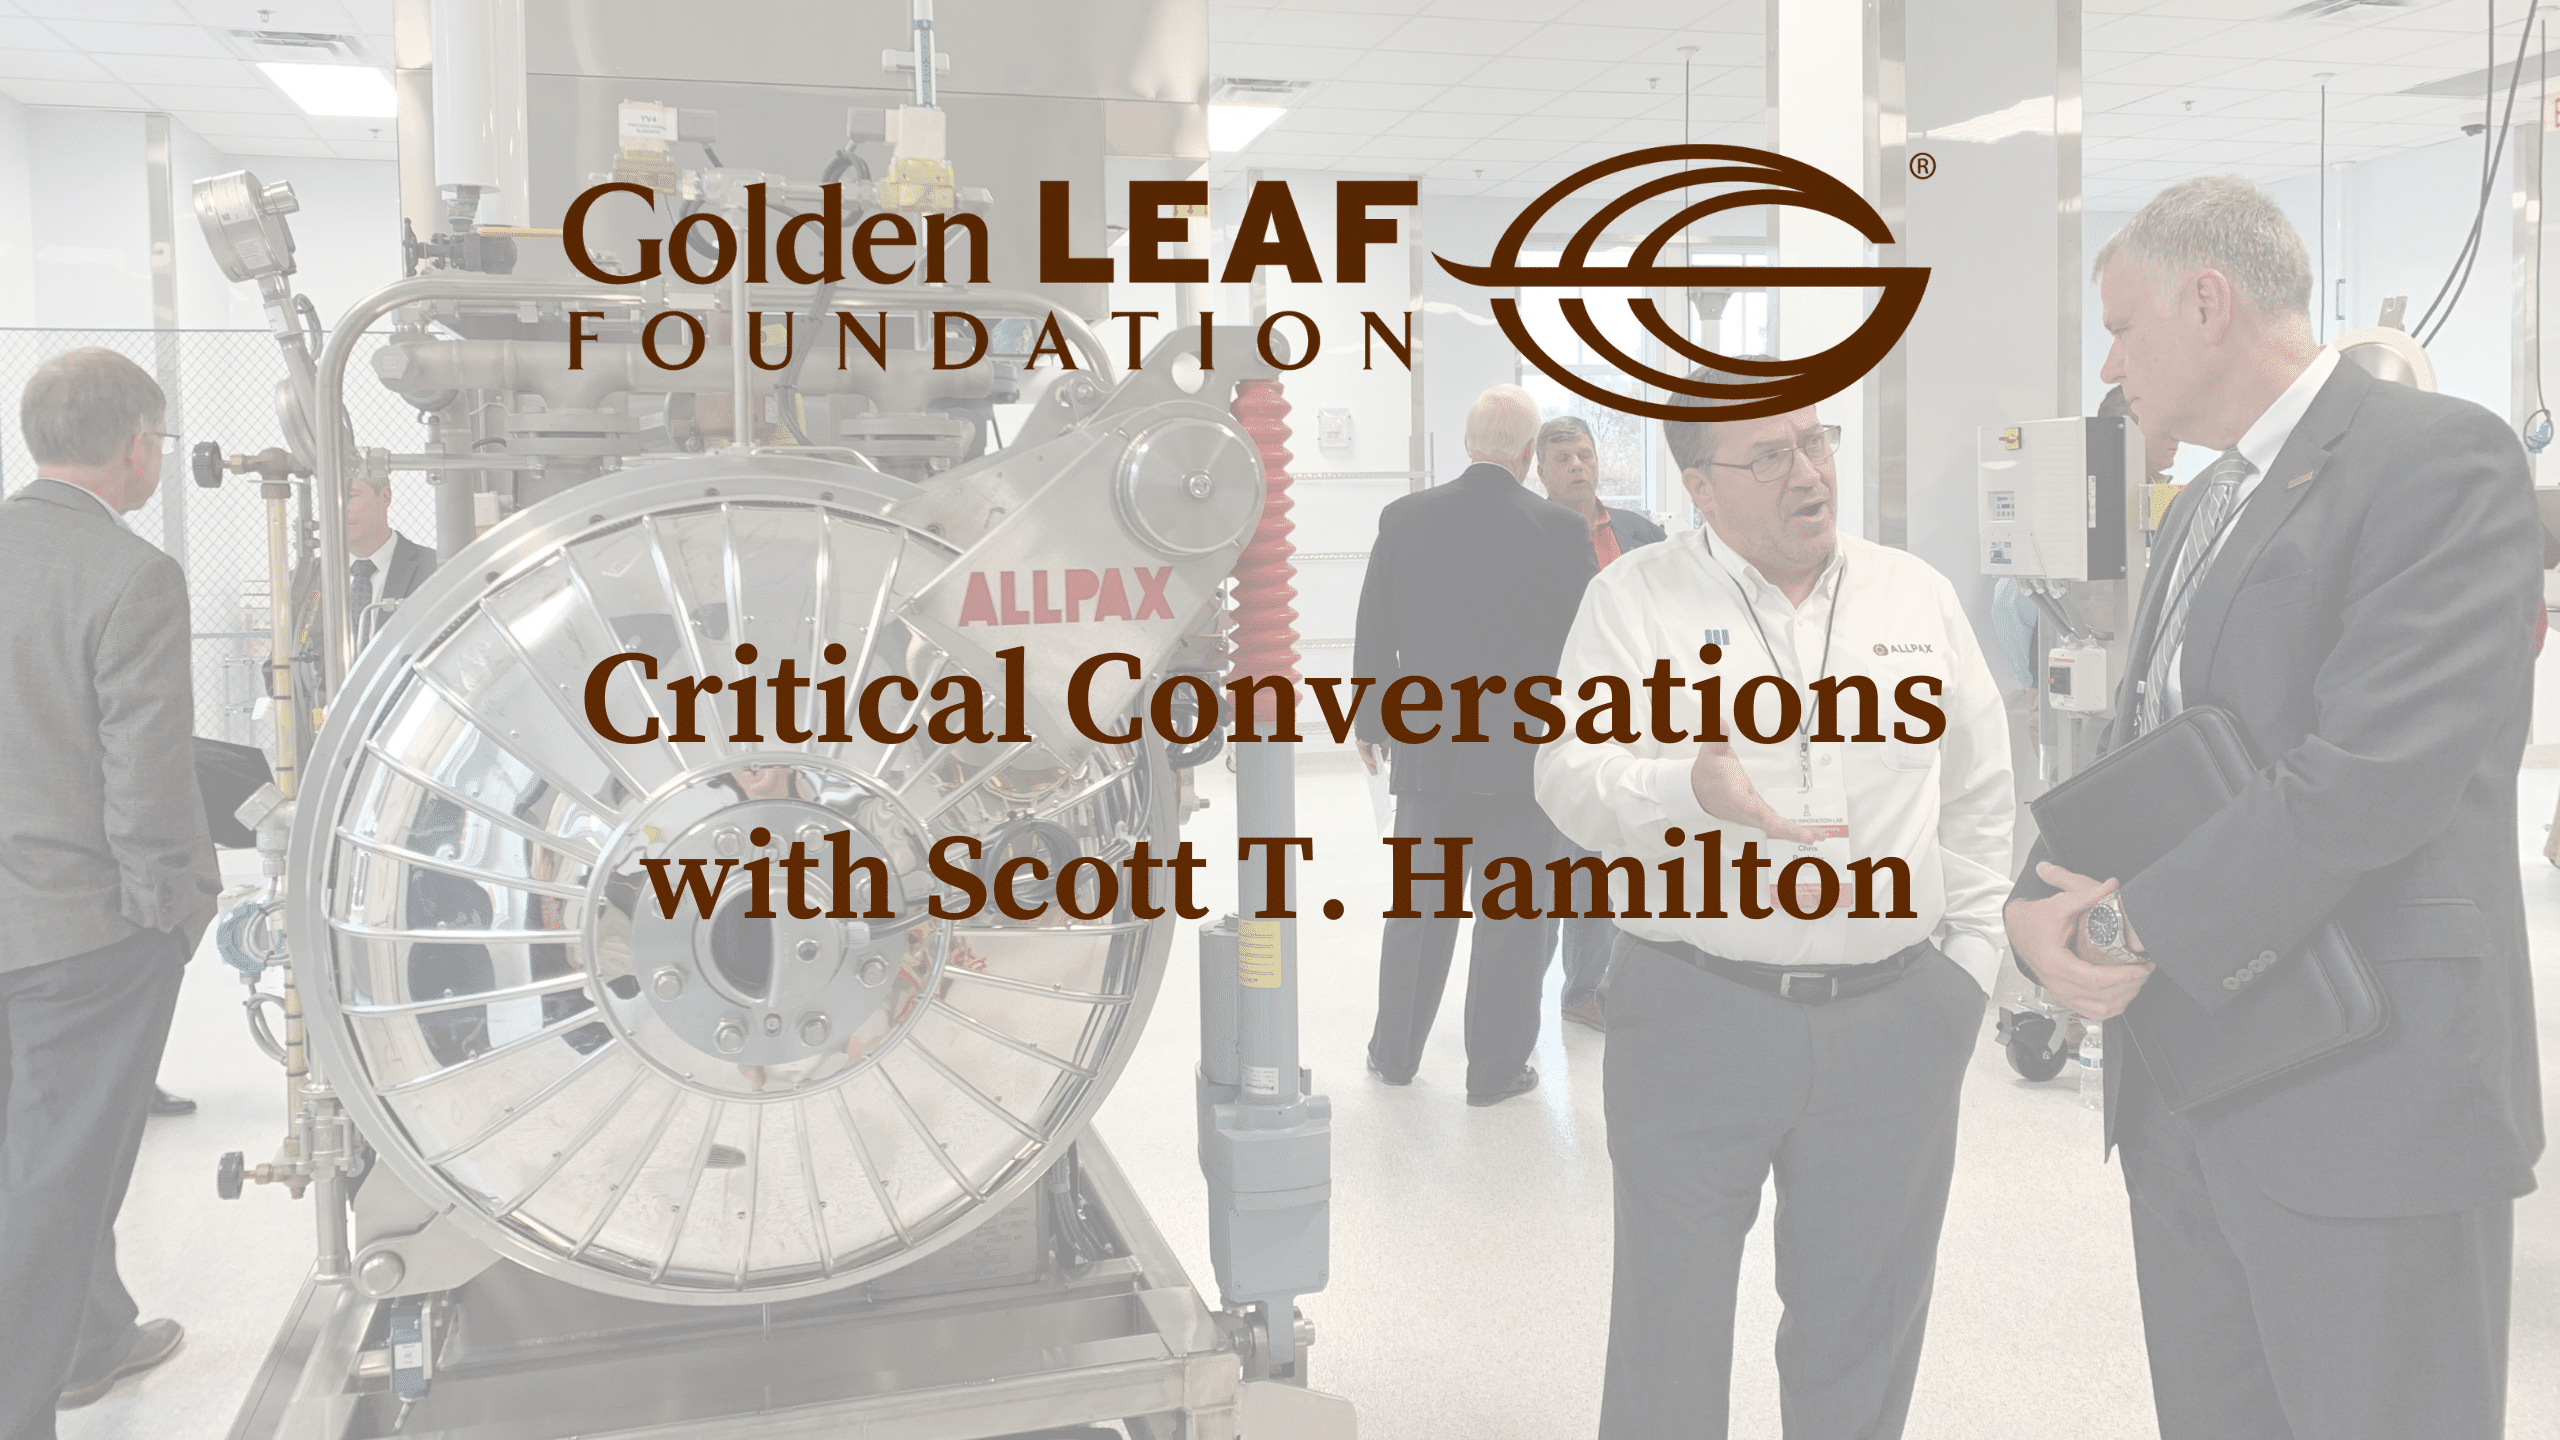 Critical Conversations with Scott T. Hamilton featuring Richard Linton, Dean of the College of Agriculture and Life Sciences at N.C. State